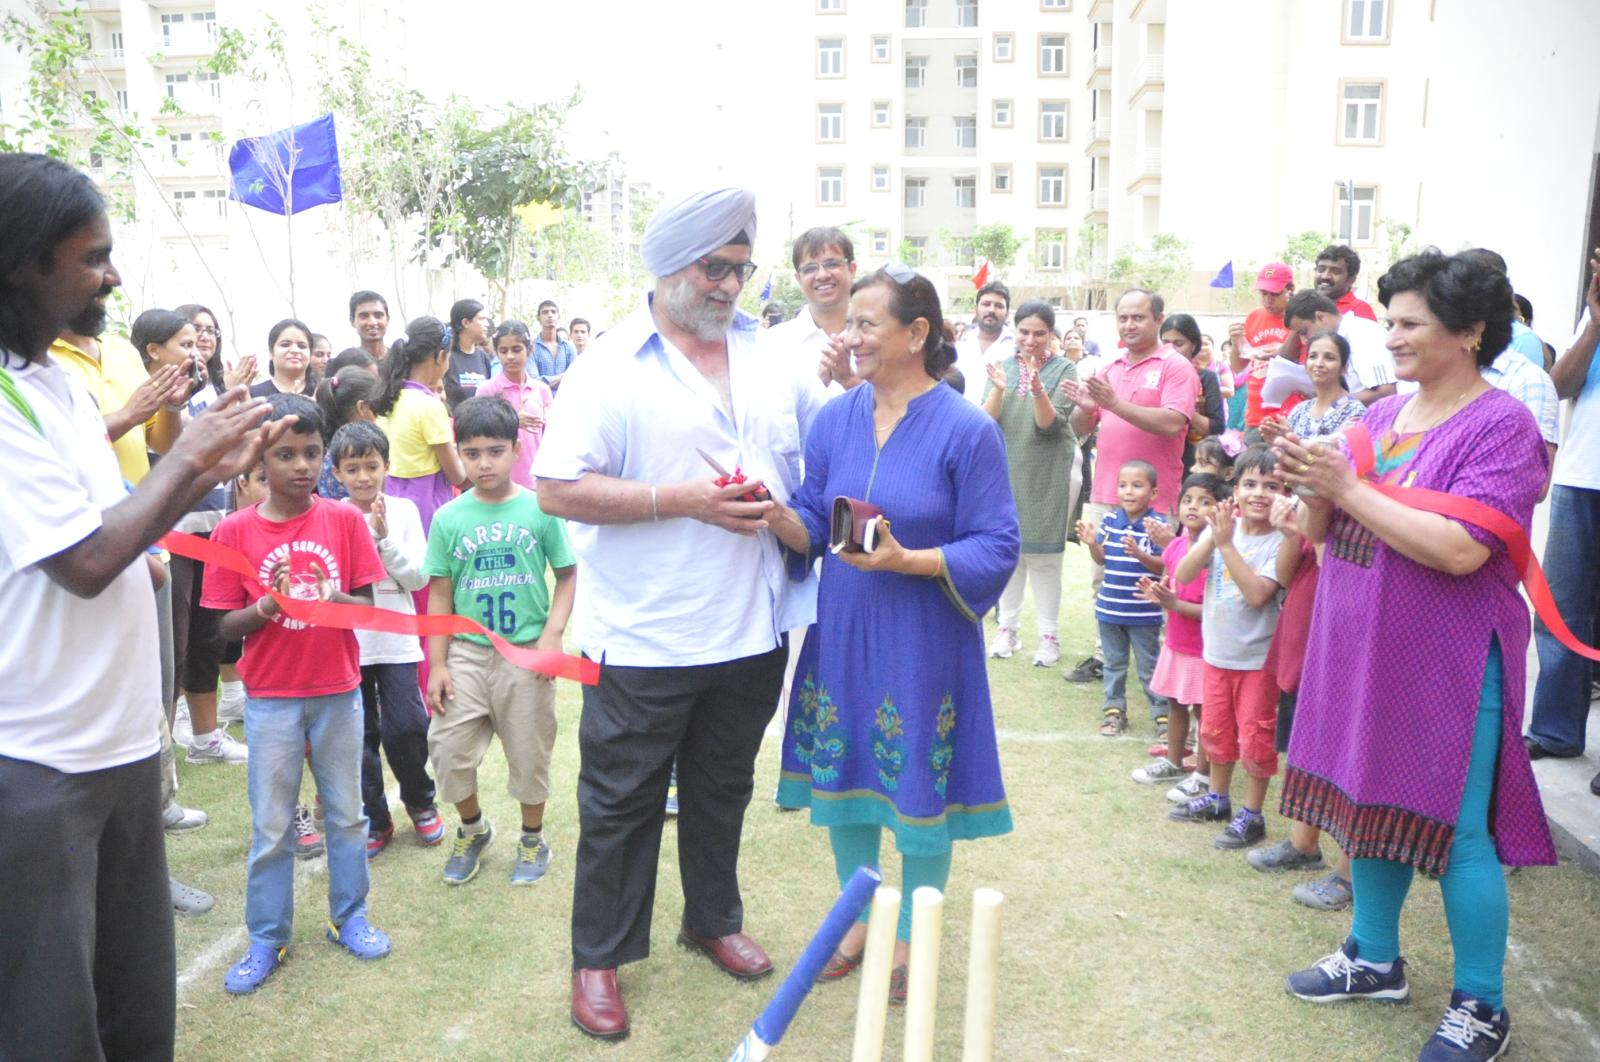 IWS Gurgaon - Indus Cricket Academy inaugurated by Bishan Bedi and Sunita Sharma